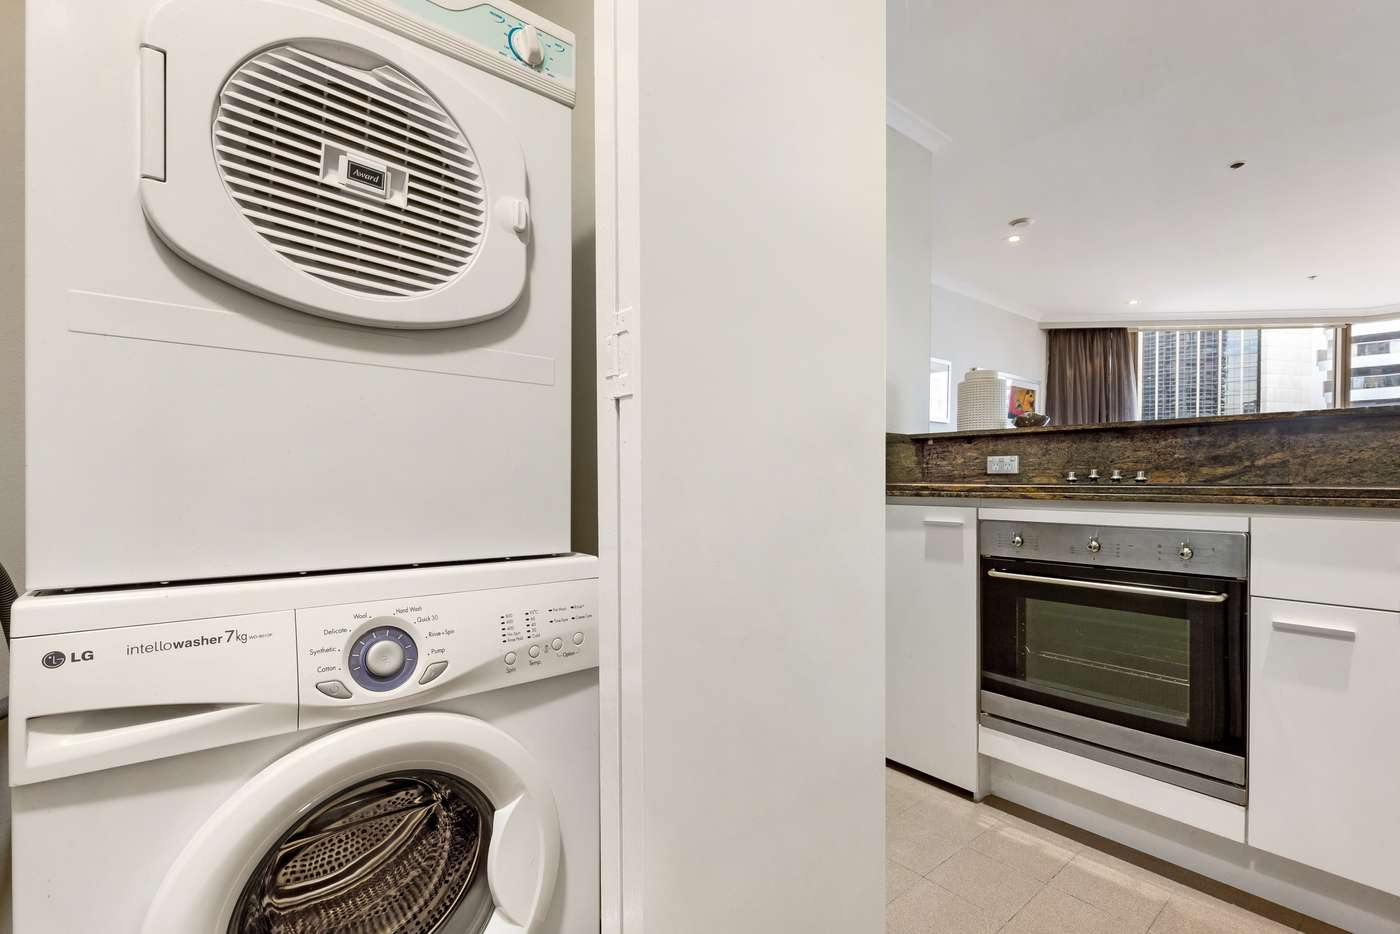 Seventh view of Homely apartment listing, 98 Gloucester St, Sydney NSW 2000